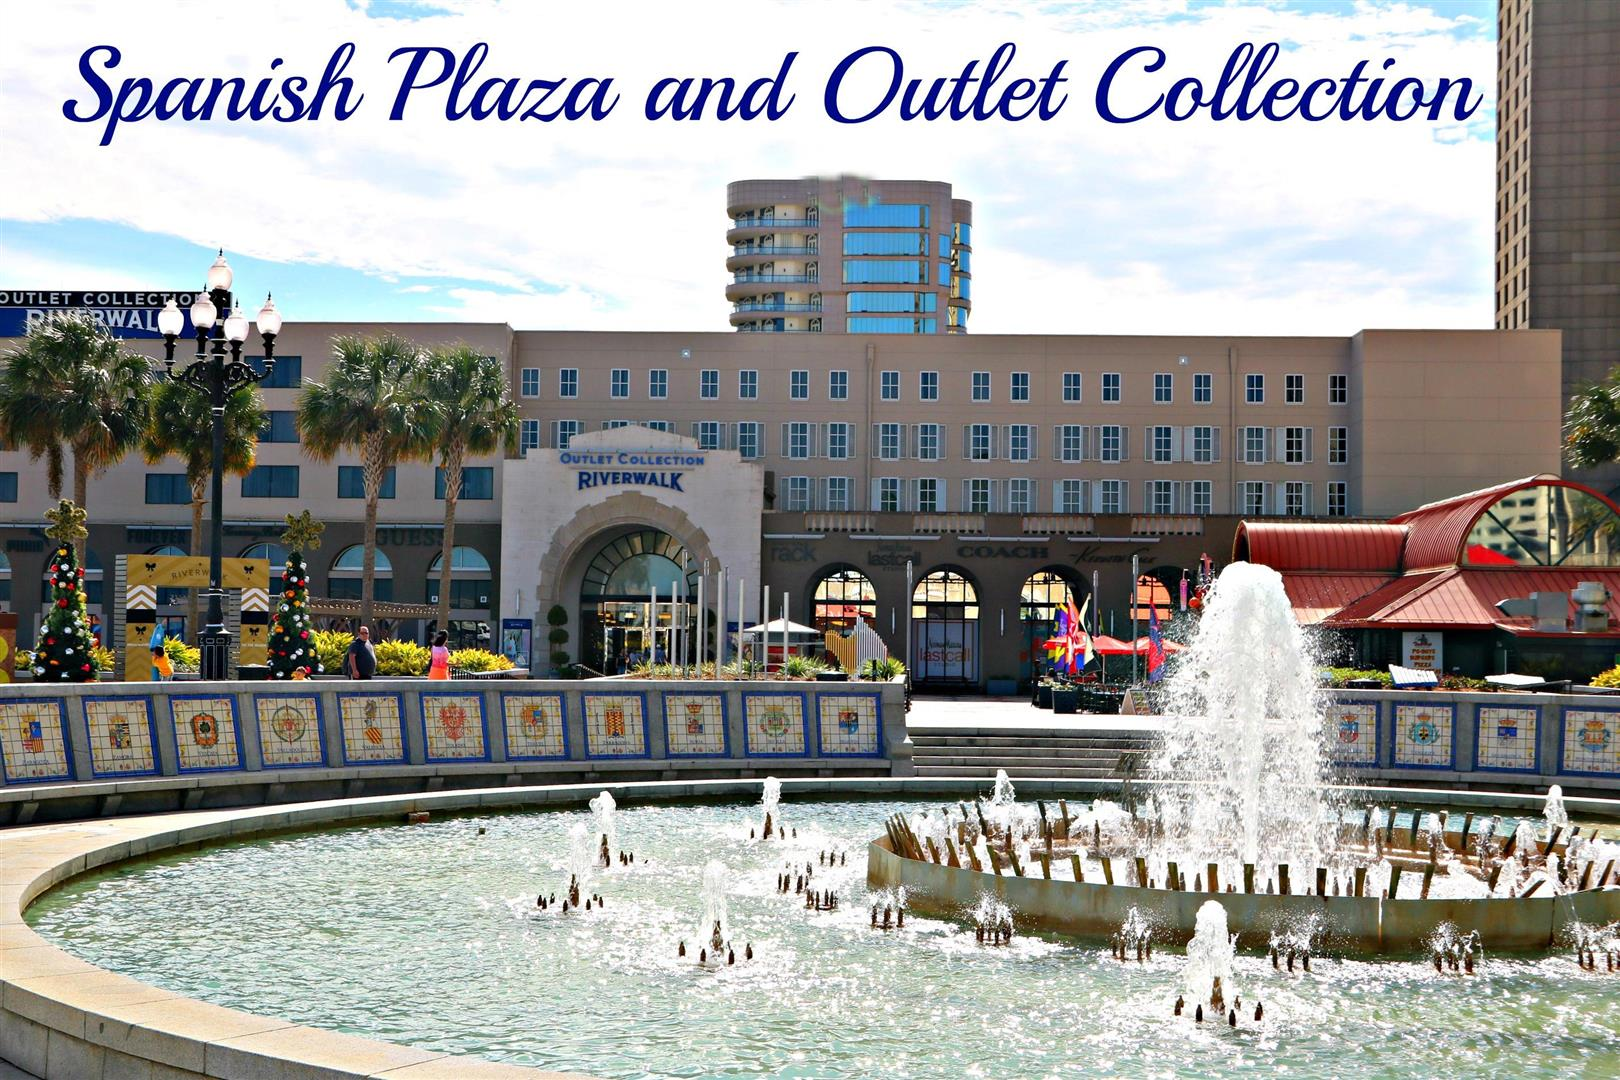 SpanishPlazaandOutletCollection.jpg